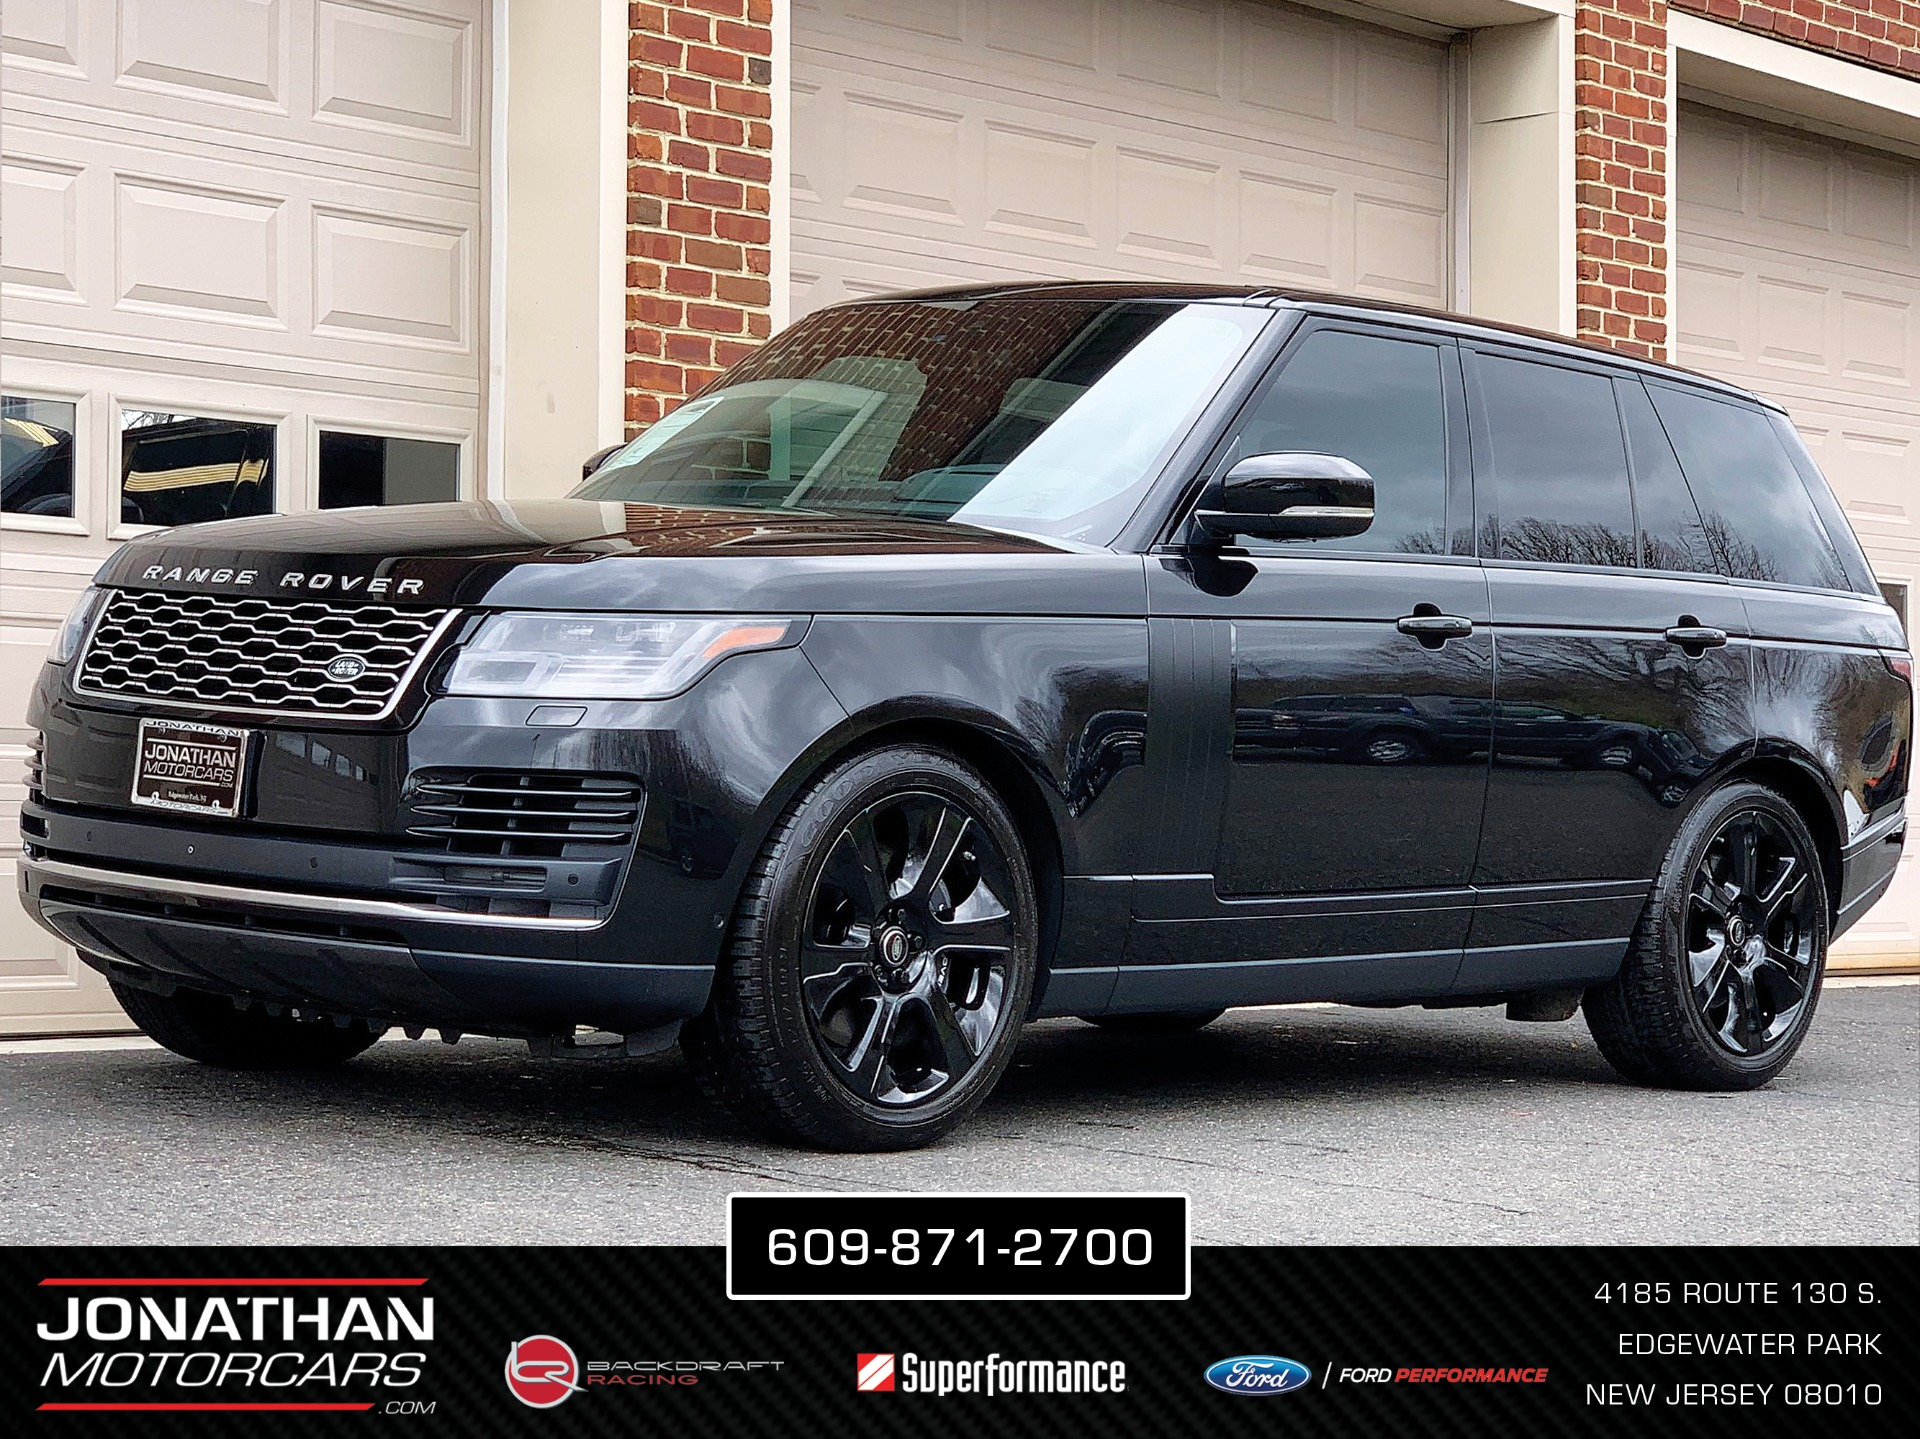 Used 2019 Land Rover Range Rover Supercharged | Edgewater Park, NJ